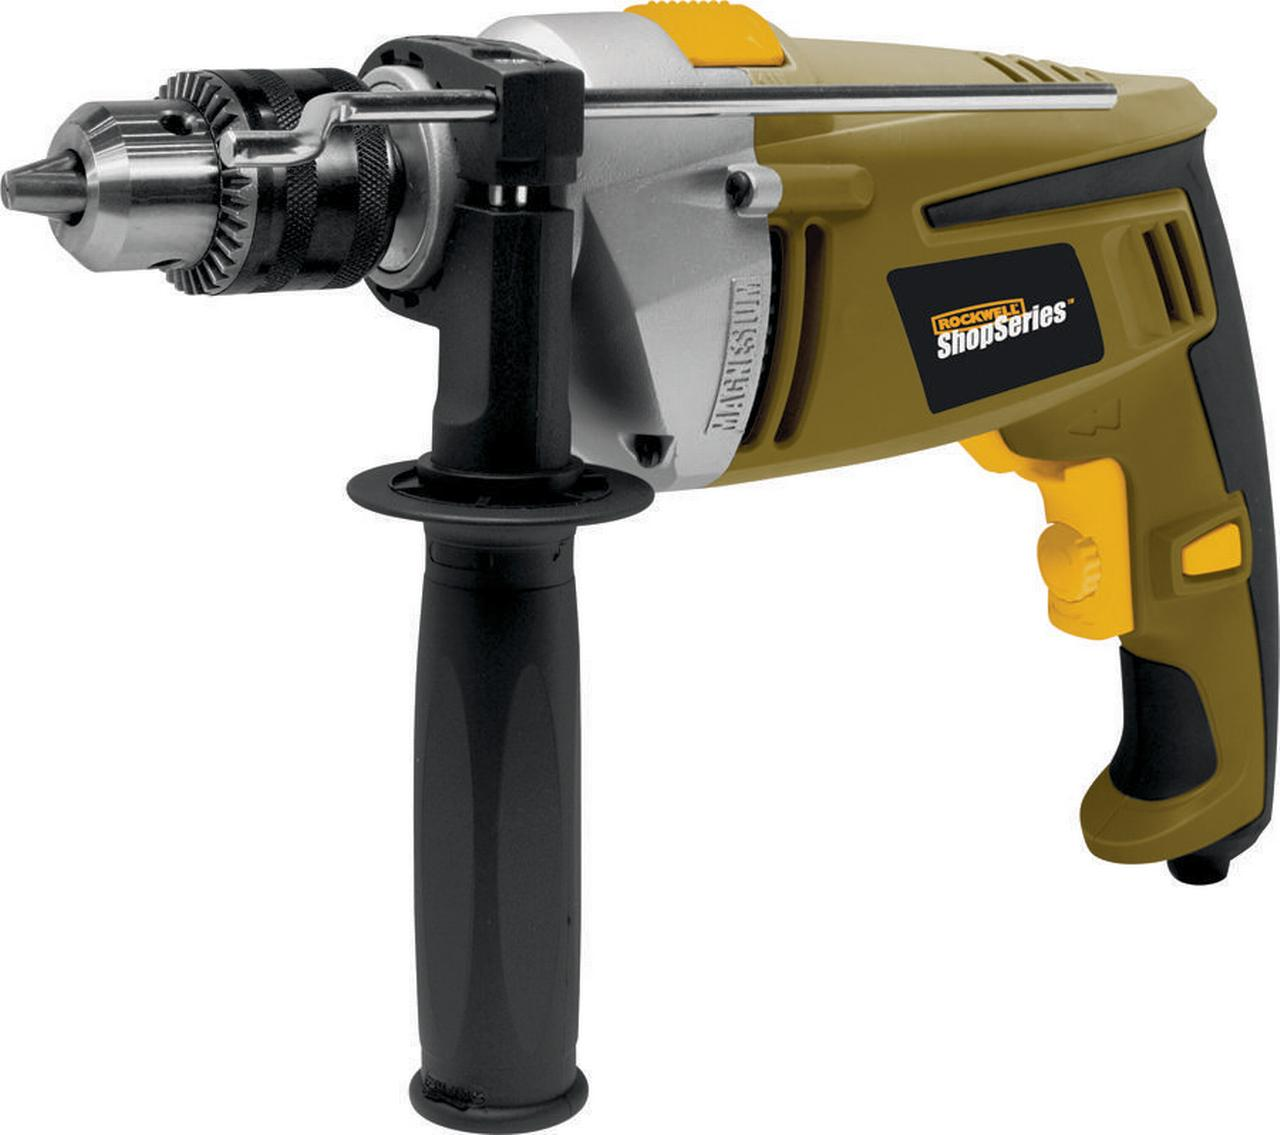 "Rockwell ShopSeries 7 Amp 1 2"" Hammer Drill by Positec Technology"